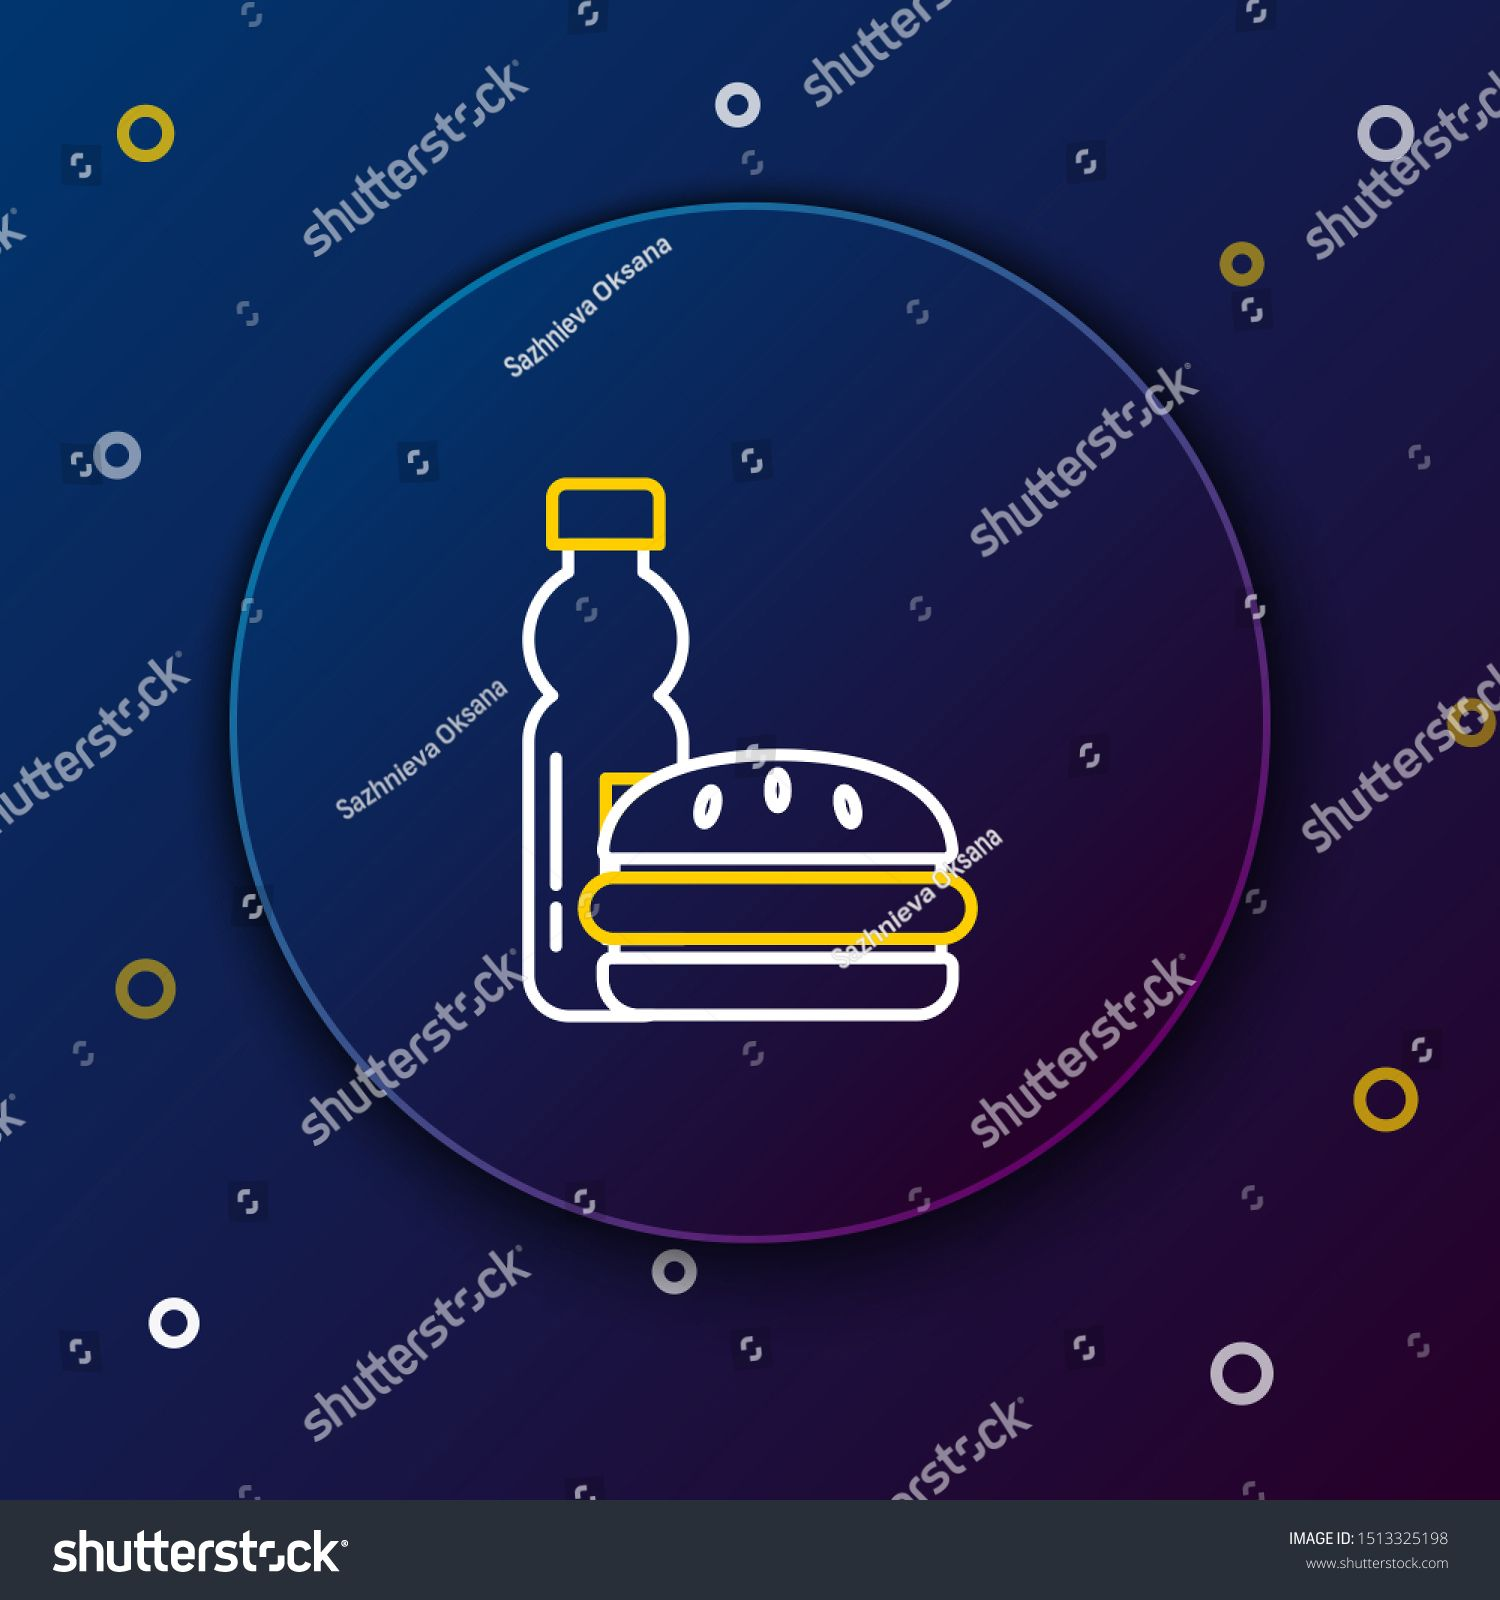 White and yellow line Bottle of water and burger icon on